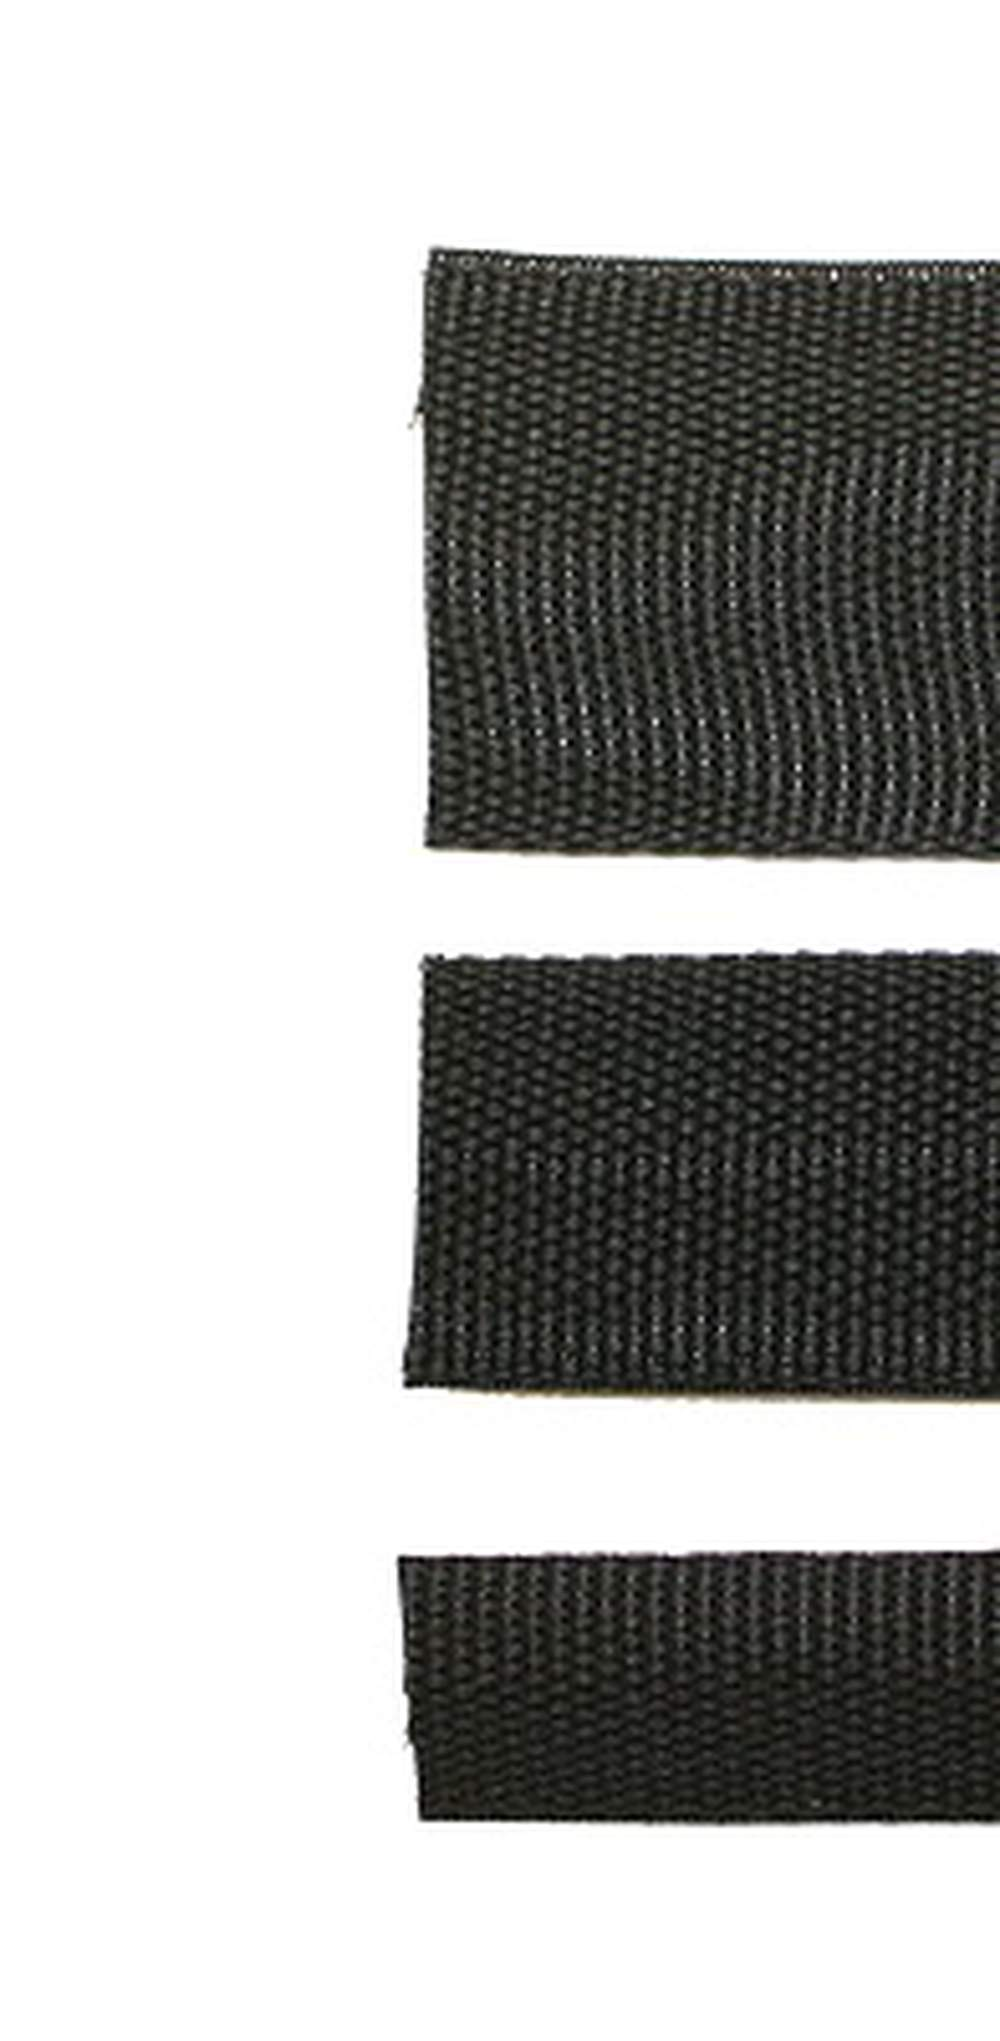 BW-10 1 Braided Fabric Heat Shrink Wire Covering - 10 FT